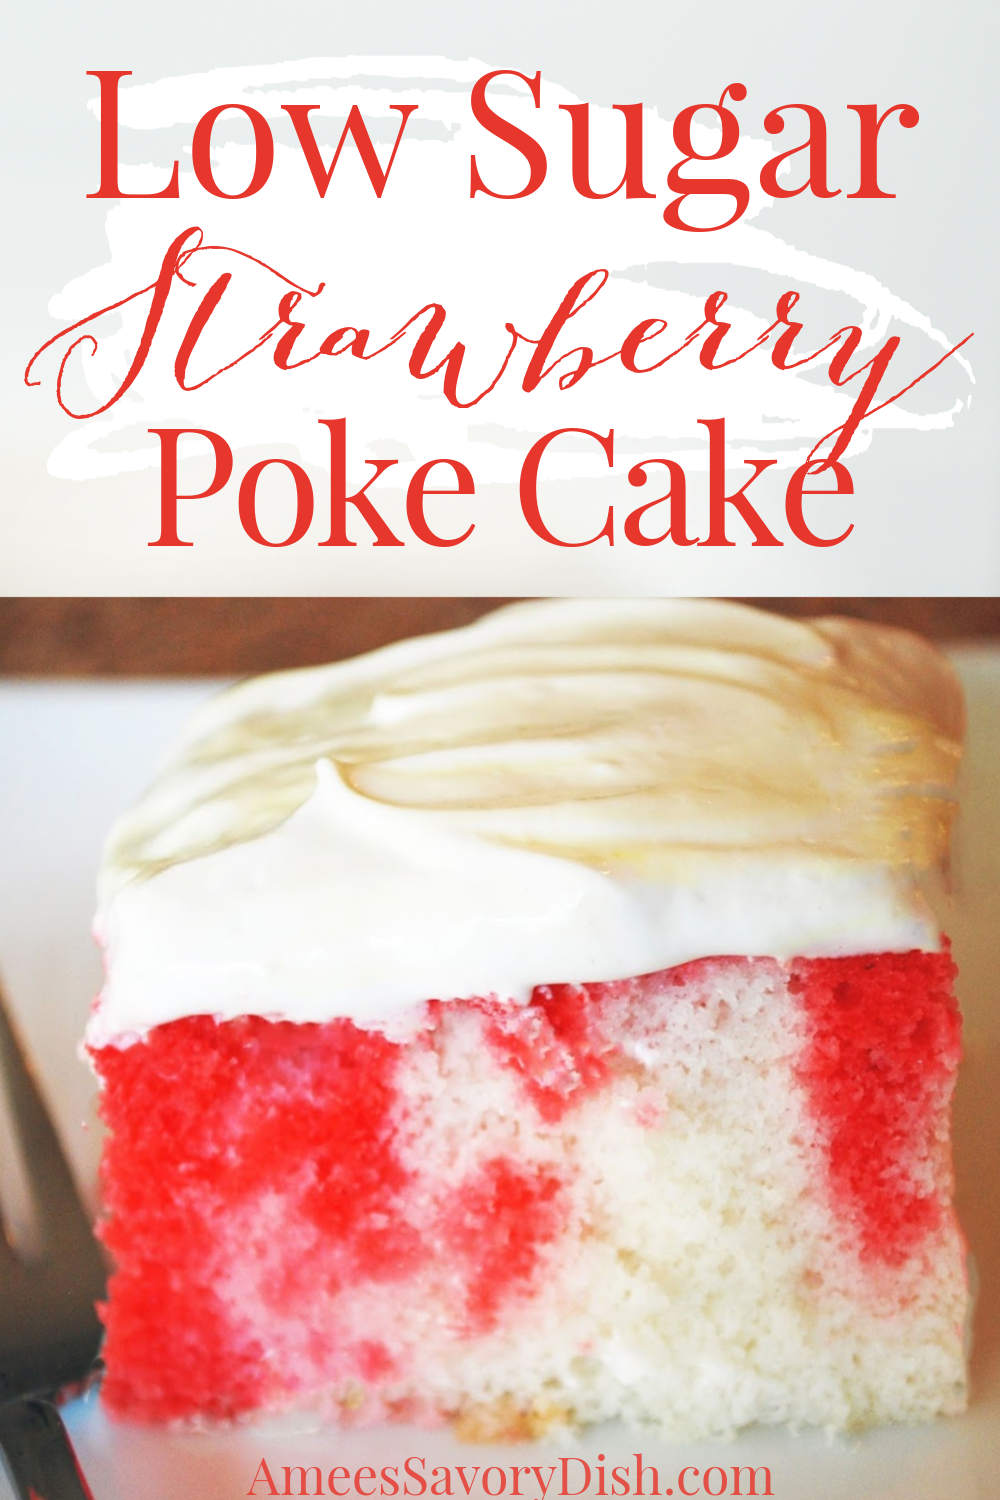 A low fat, low sugar recipe for delicious strawberry poke cake made with white cake mix, strawberry jello, and light cool whip. You can also use Truwhip for a cool whip substitute. #strawberrycake #pokecake #cakerecipe via @Ameessavorydish